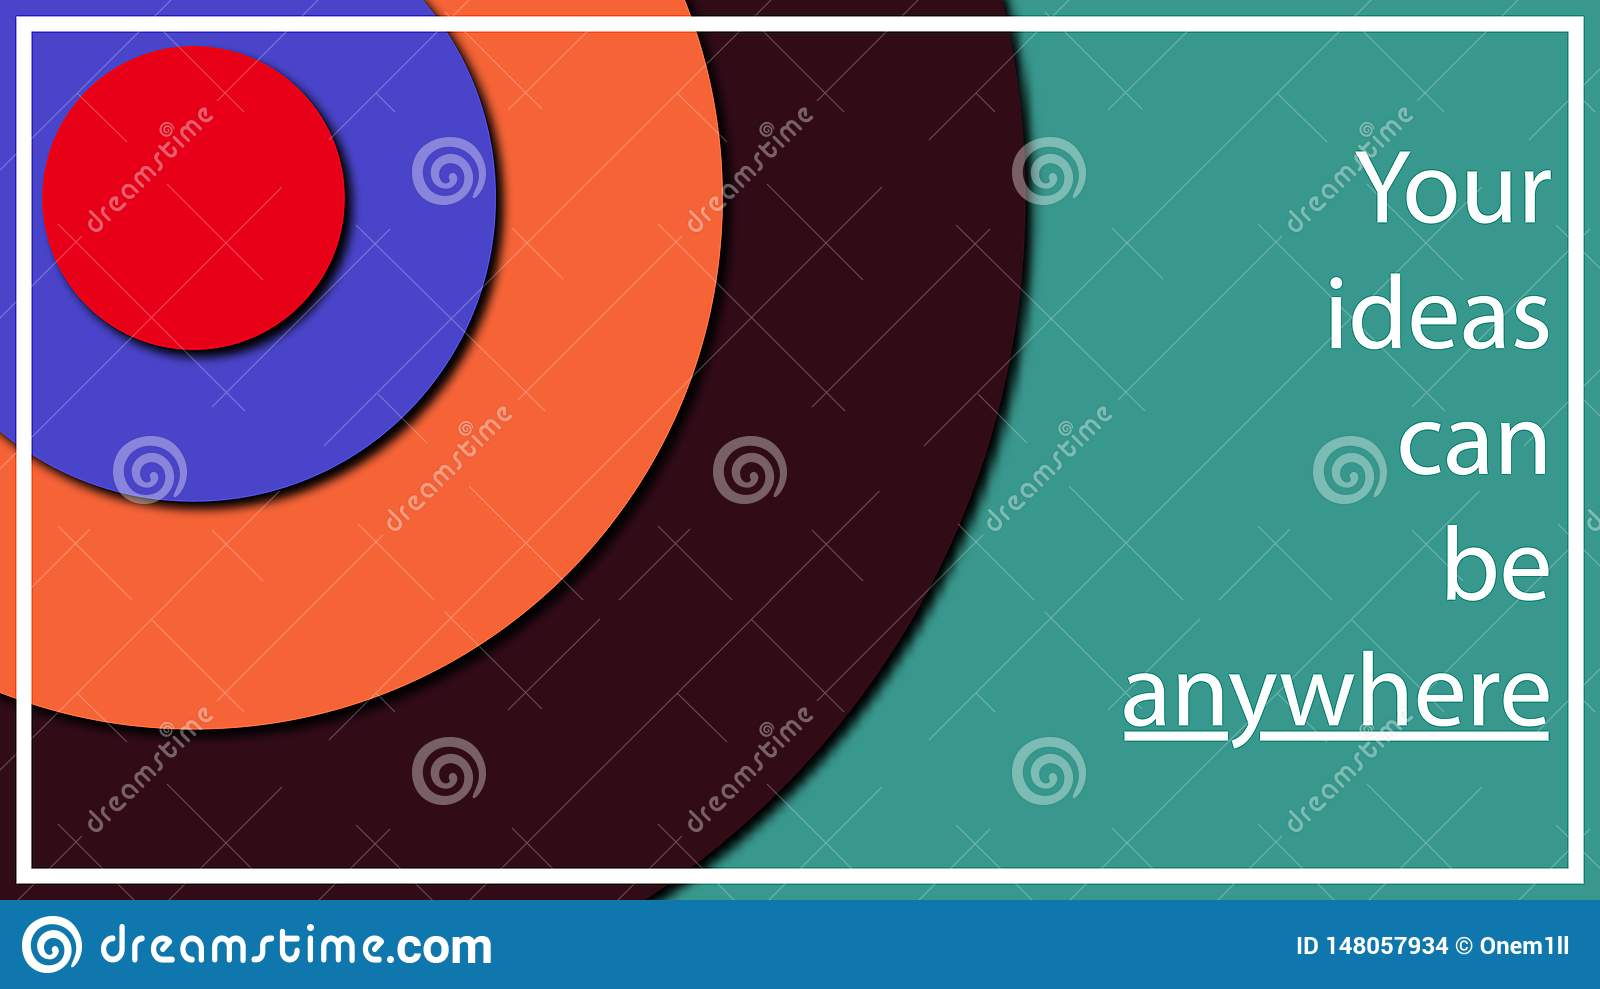 Multi-colored abstract illustration in the form of different diameter circles at different heights from each other. Volume effect